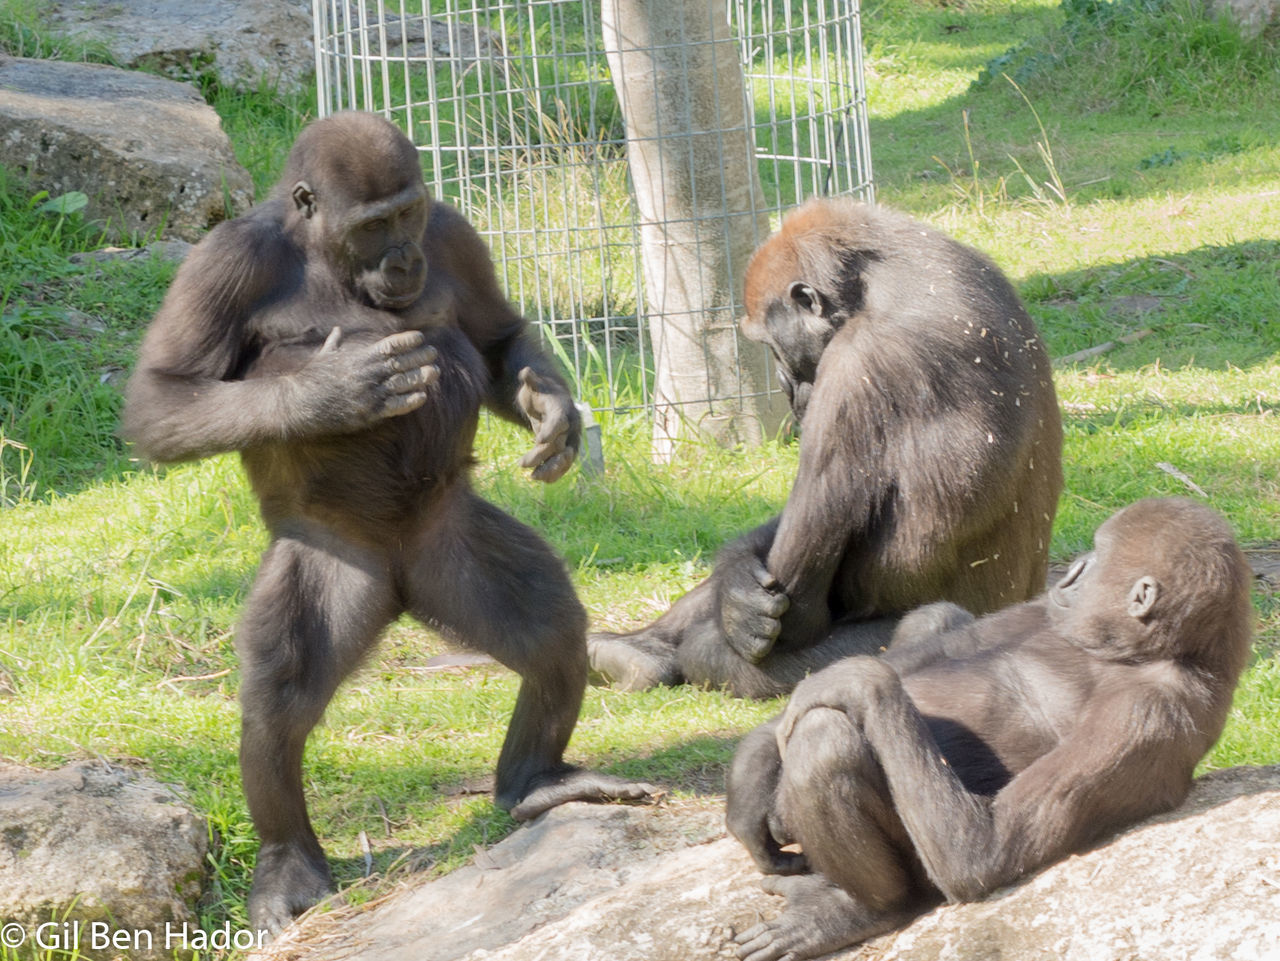 animals in the wild, monkey, animal wildlife, primate, two animals, ape, zoo, mammal, animal themes, young animal, baboon, outdoors, day, no people, togetherness, full length, sitting, nature